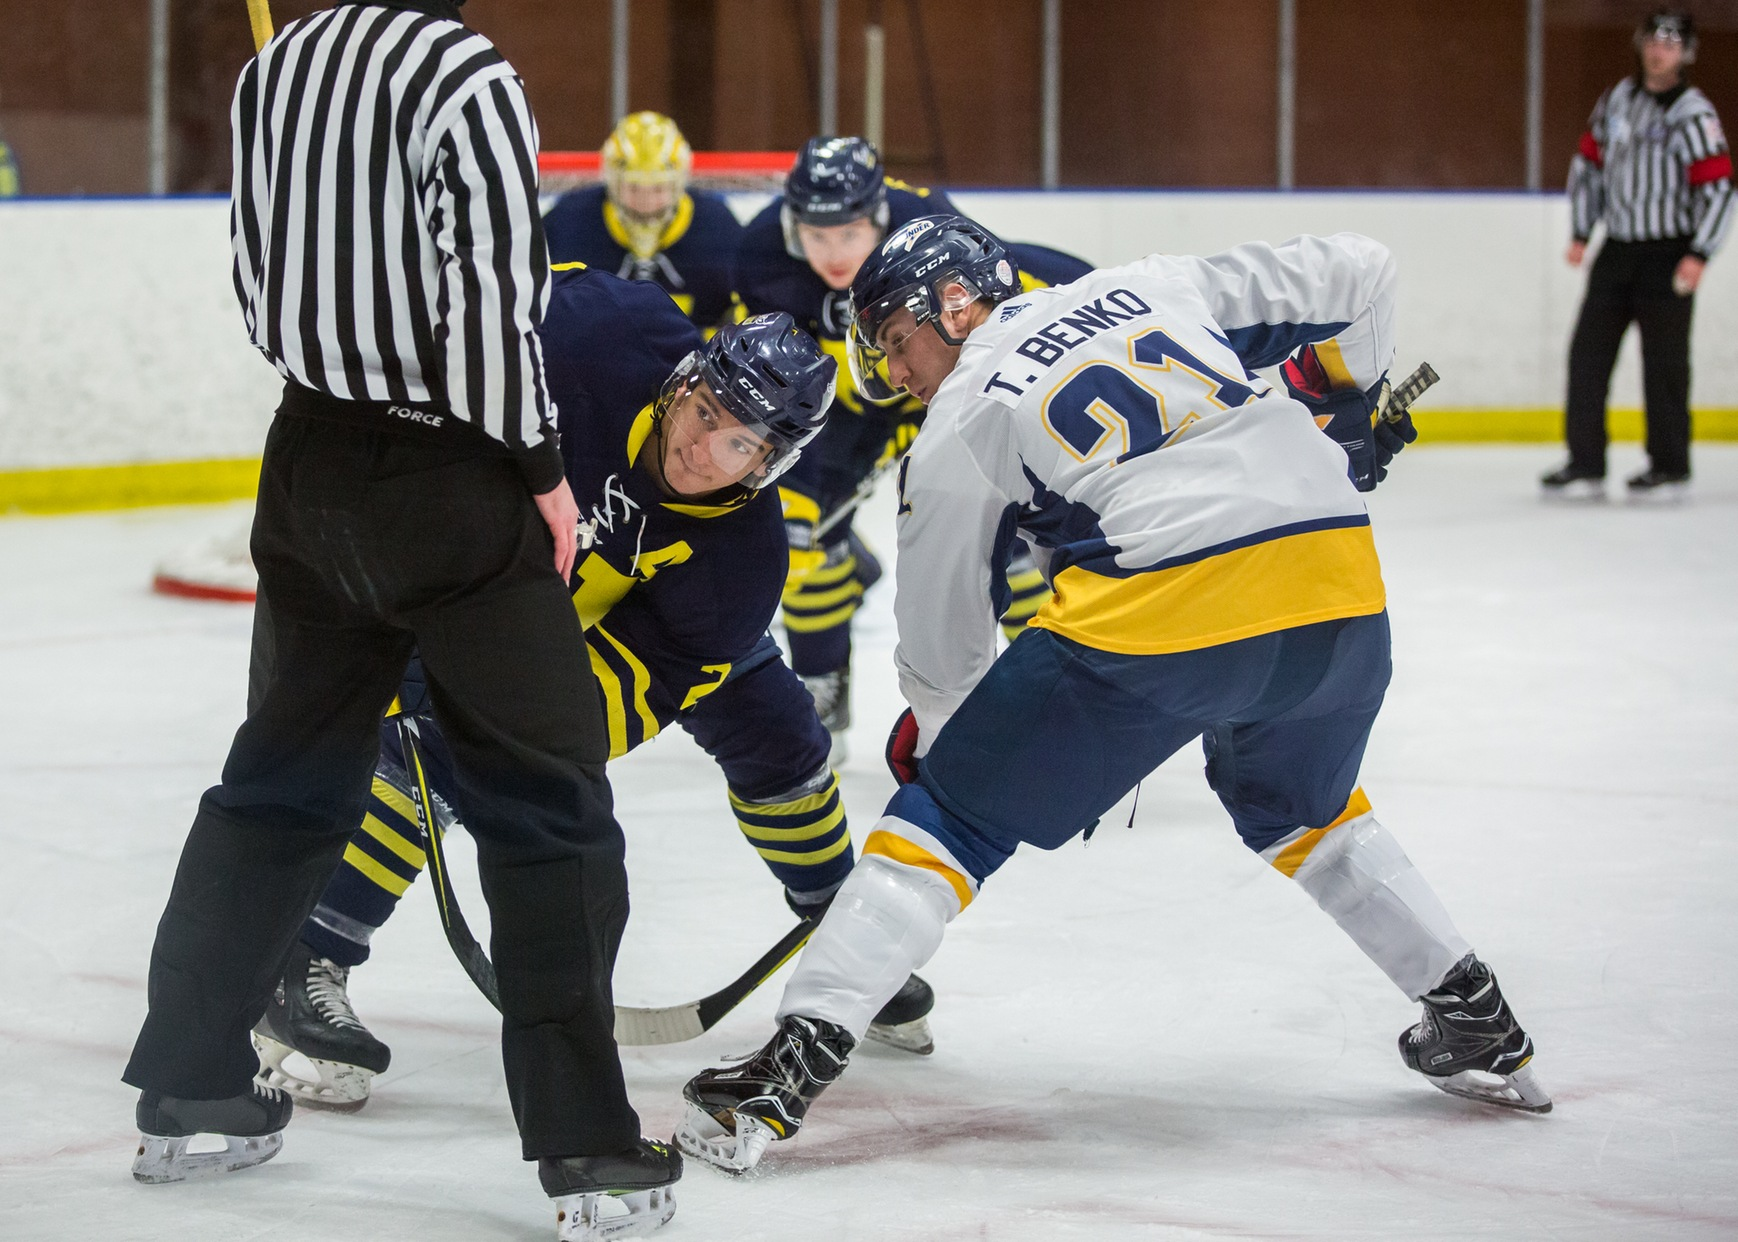 Ooks Grounded By Thunder-Storms